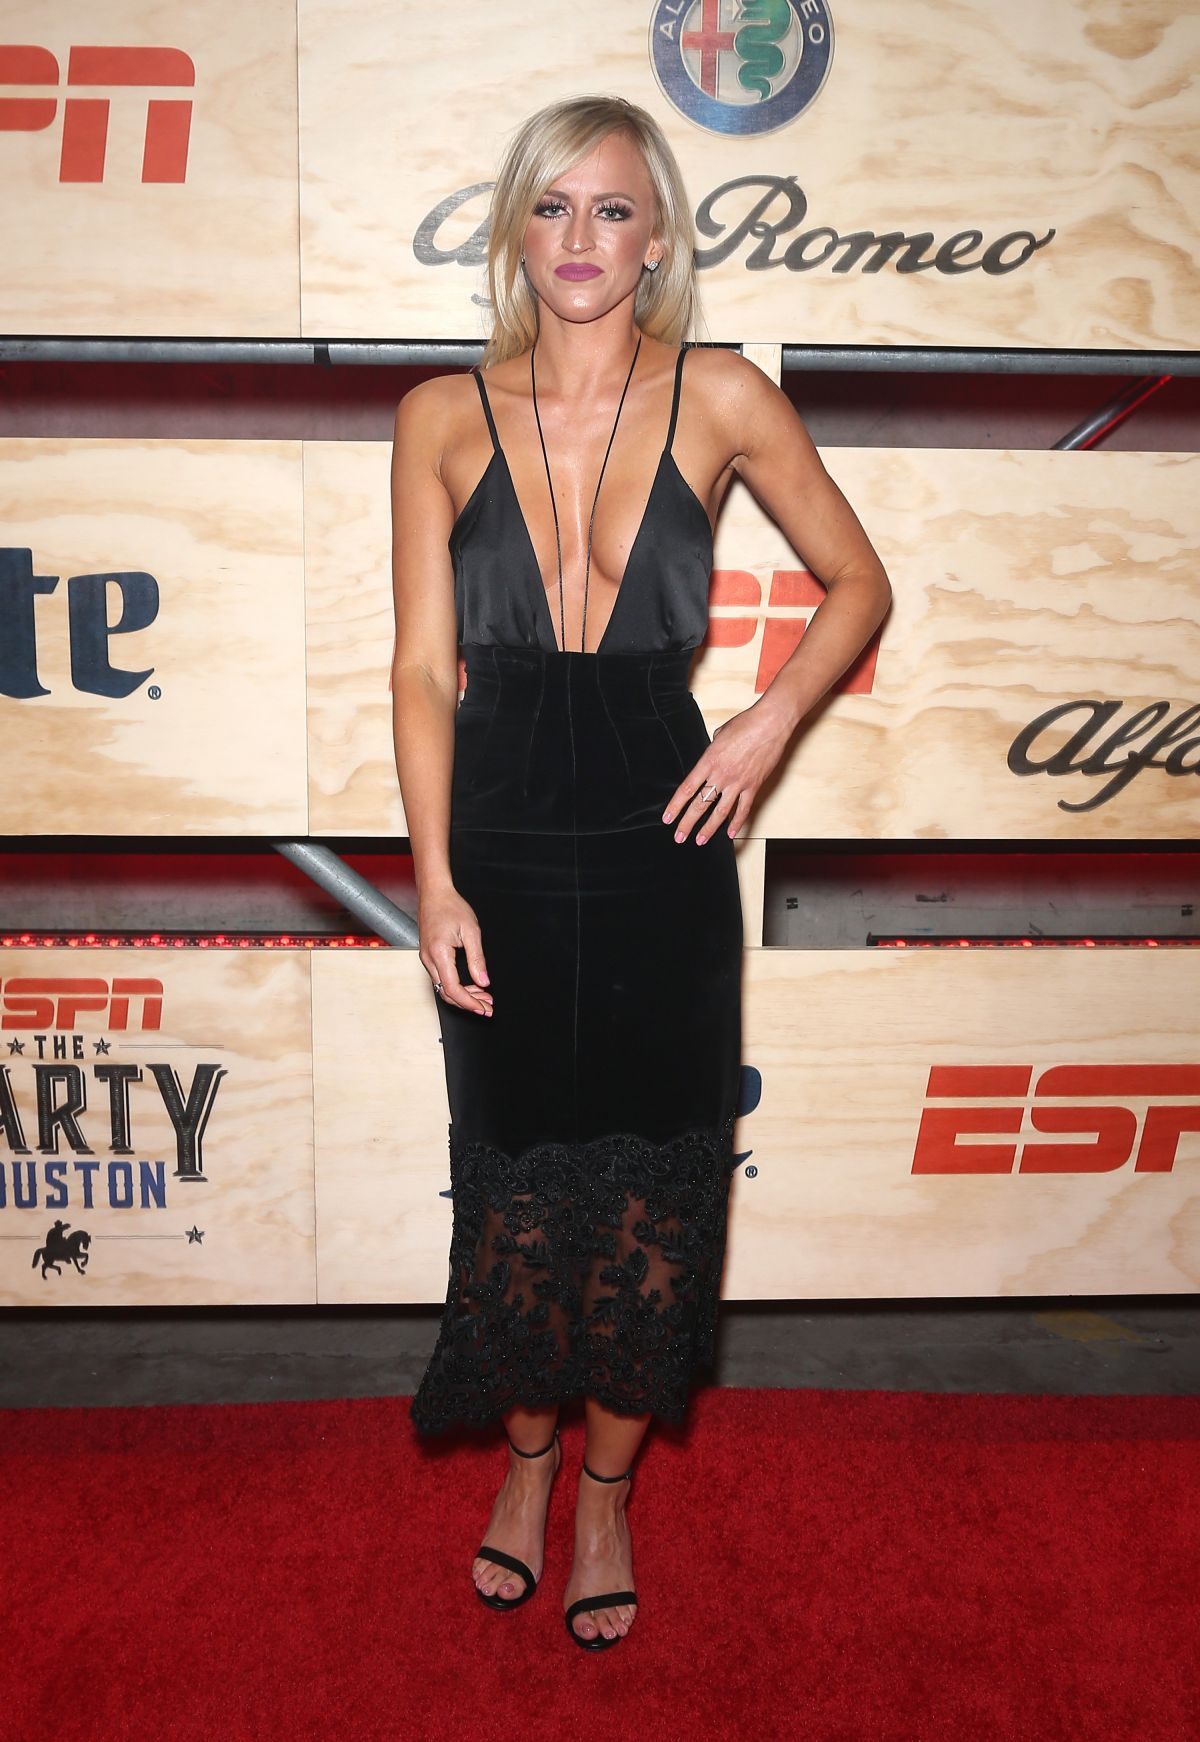 DANIELLE MOINET at 13th Annual ESPN Party in Houston 02/03/2017